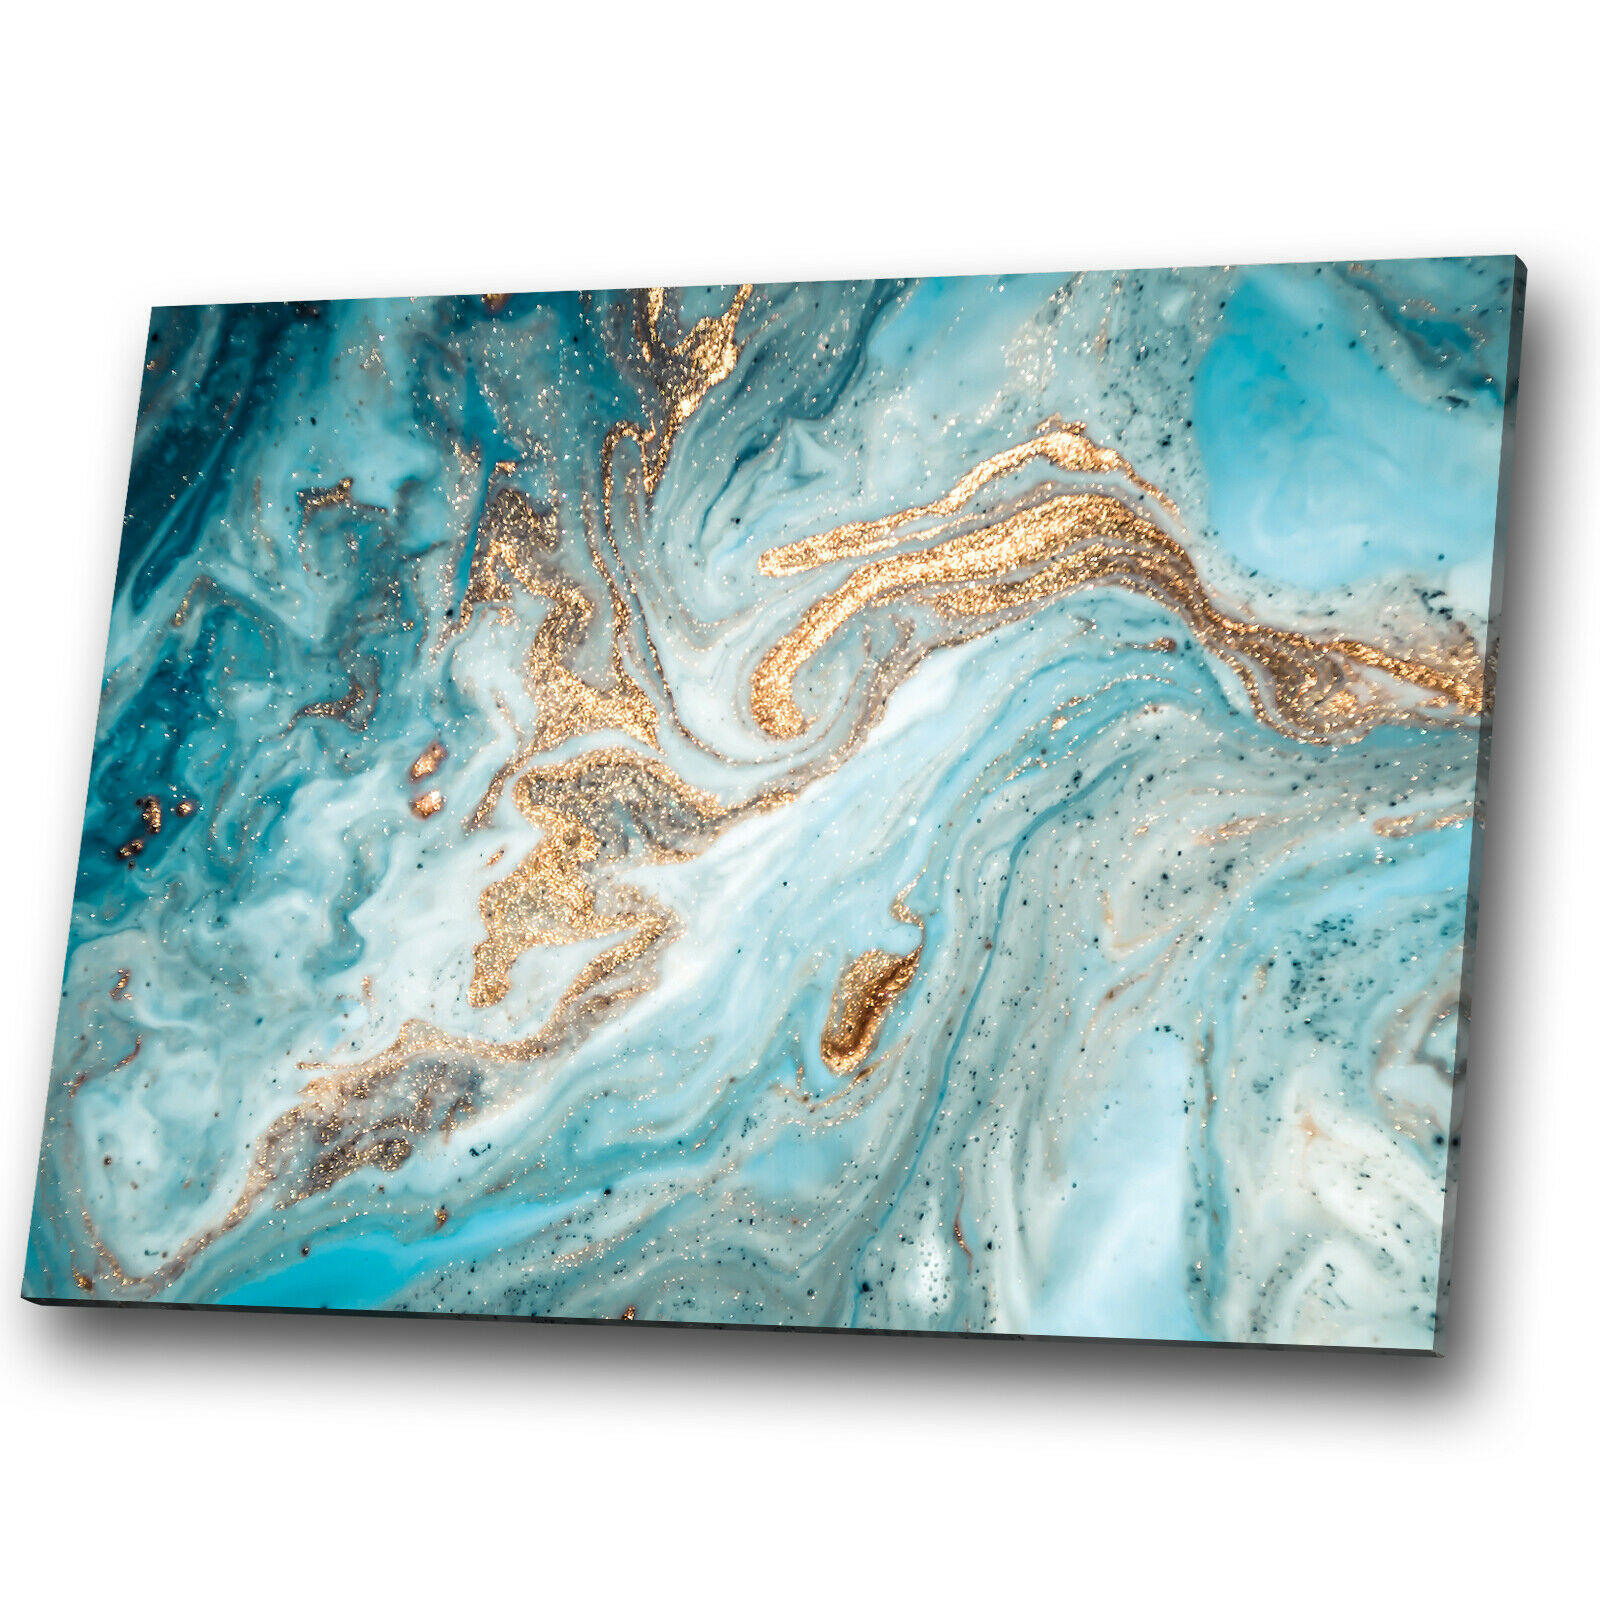 Blau Teal Weiß Gold Marble Abstract Canvas Wall Art Large Picture Prints